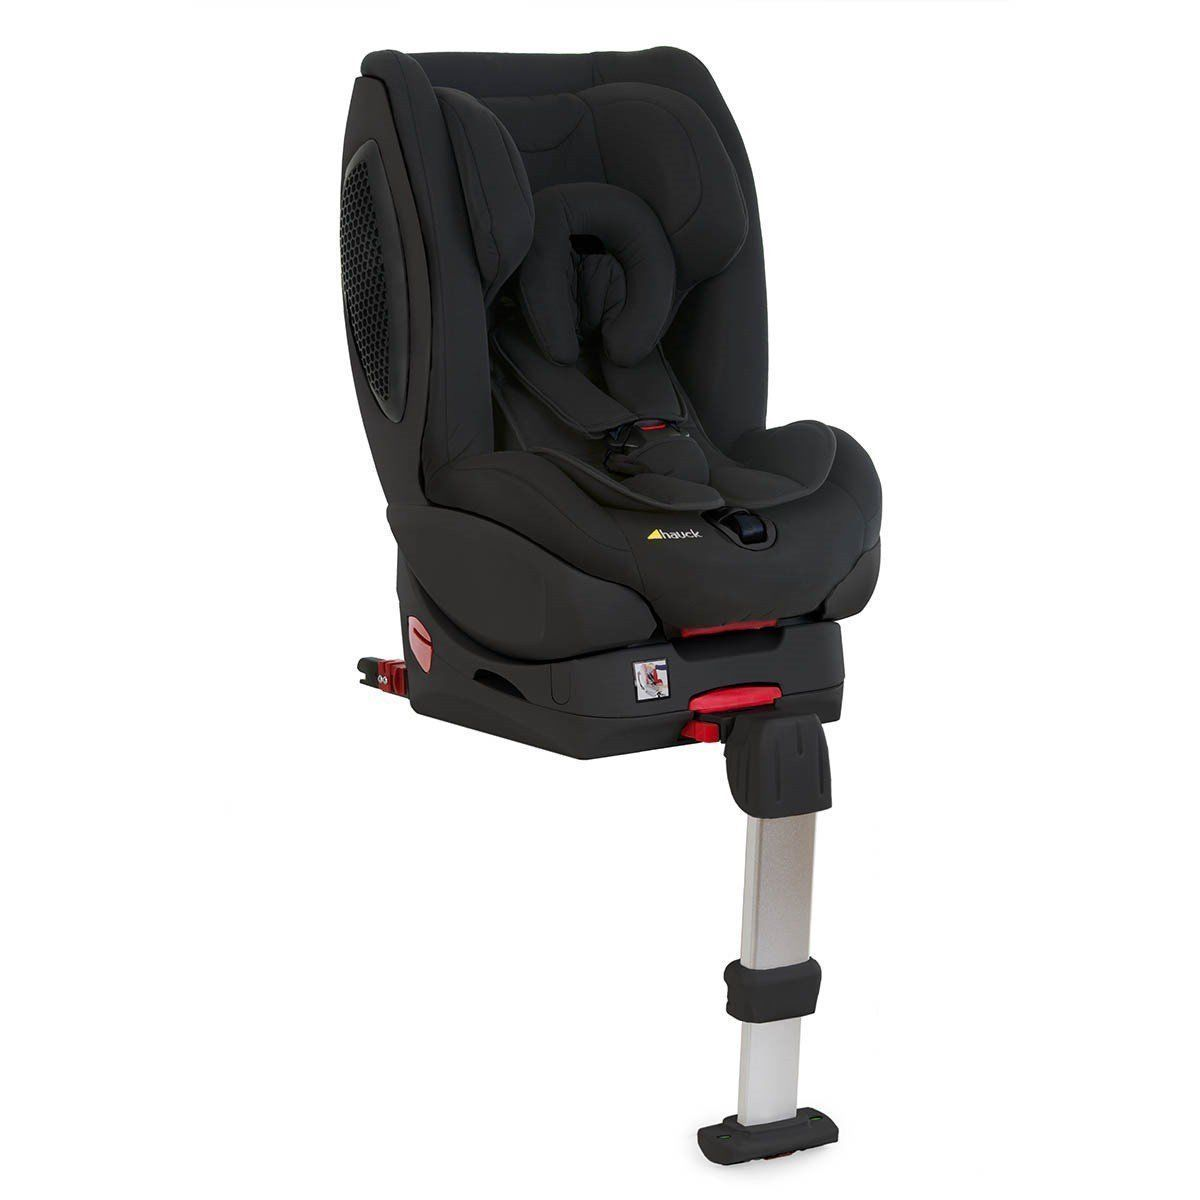 new hauck varioguard plus isofix 2 way carseat black edition from 0 upto 18kg. Black Bedroom Furniture Sets. Home Design Ideas